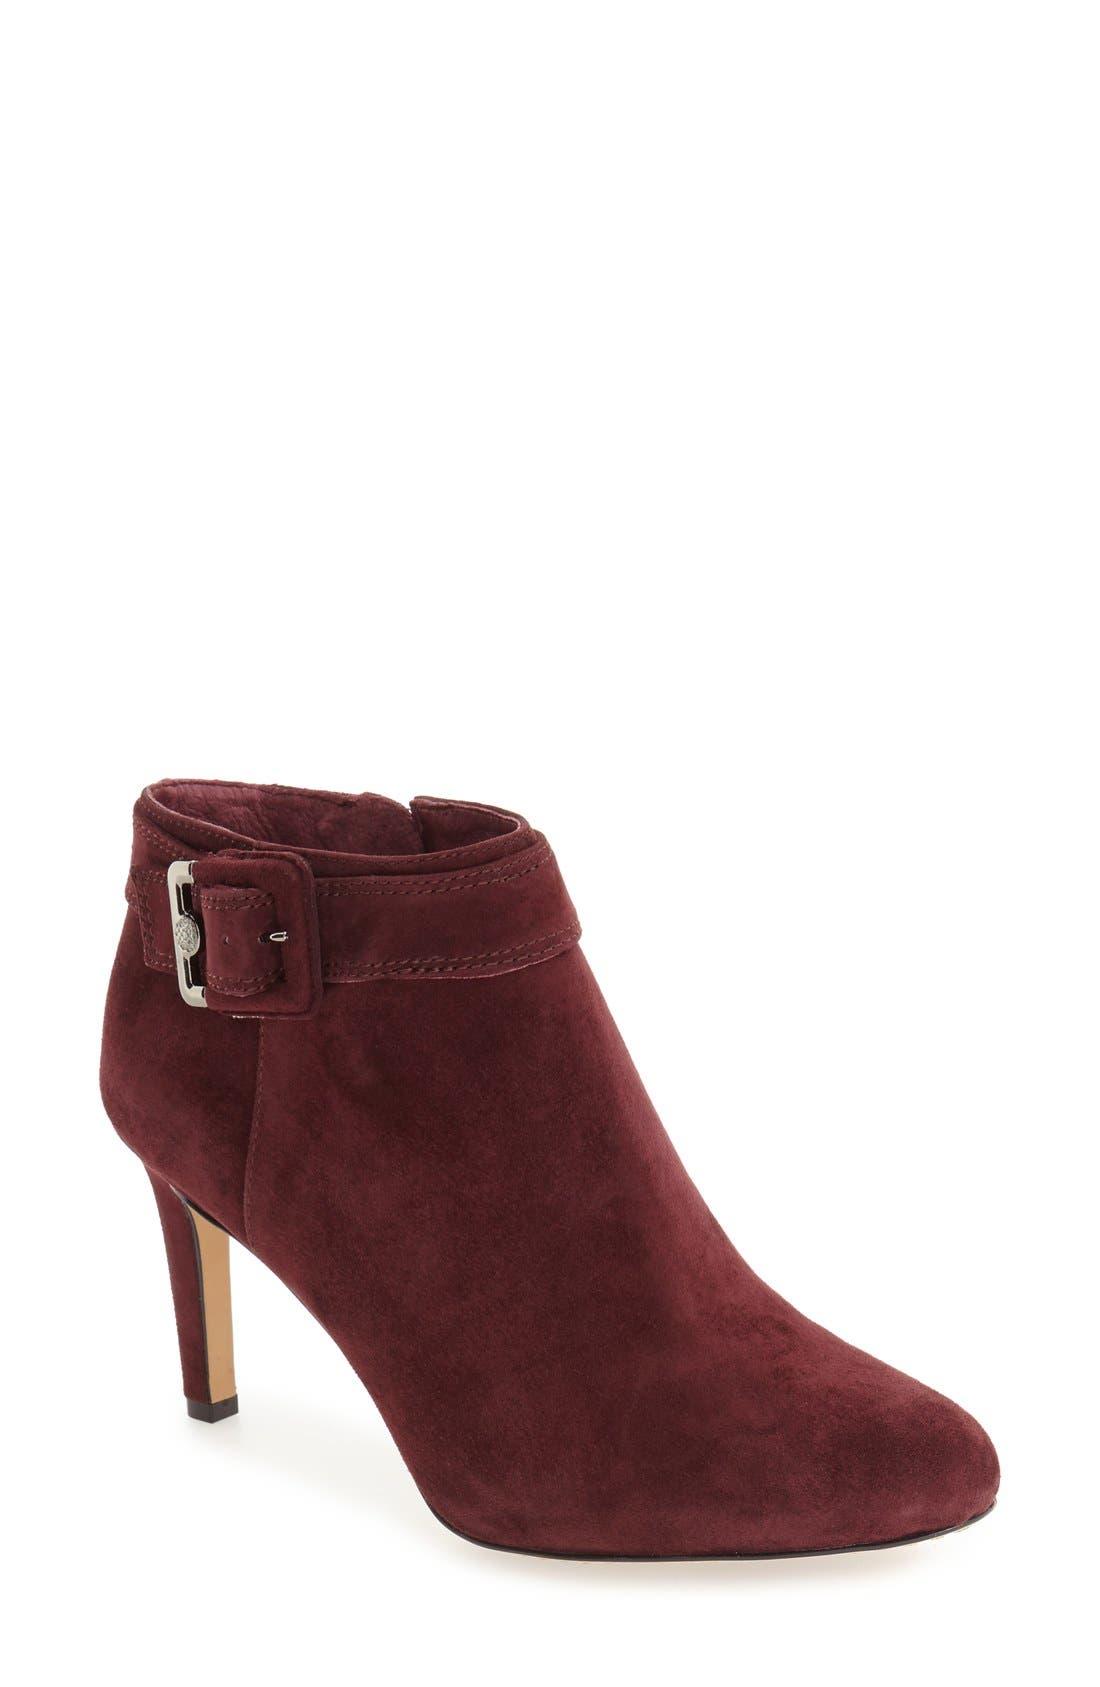 Alternate Image 1 Selected - Vince Camuto 'Chrissa' Bootie (Women) (Nordstrom Exclusive)